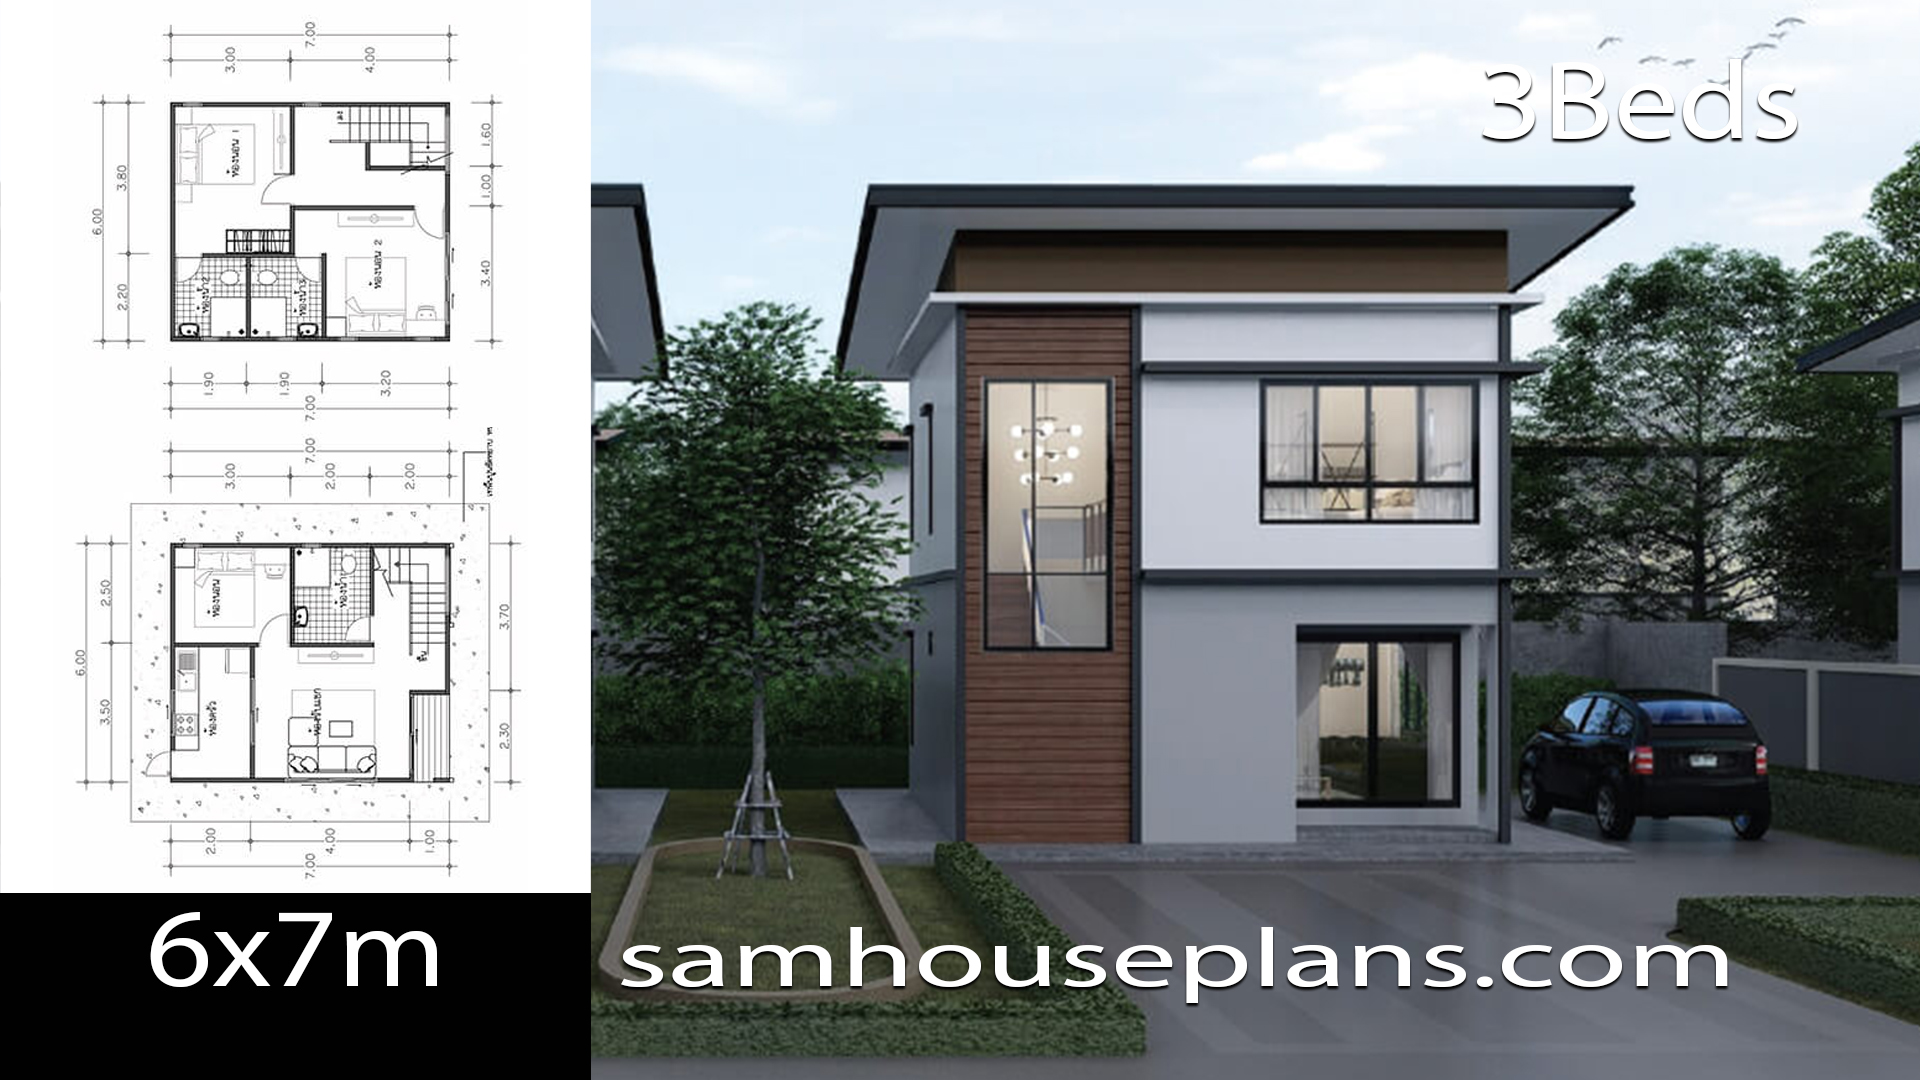 House Plans Idea 6x7 with 3 Bedrooms - SamHousePlans